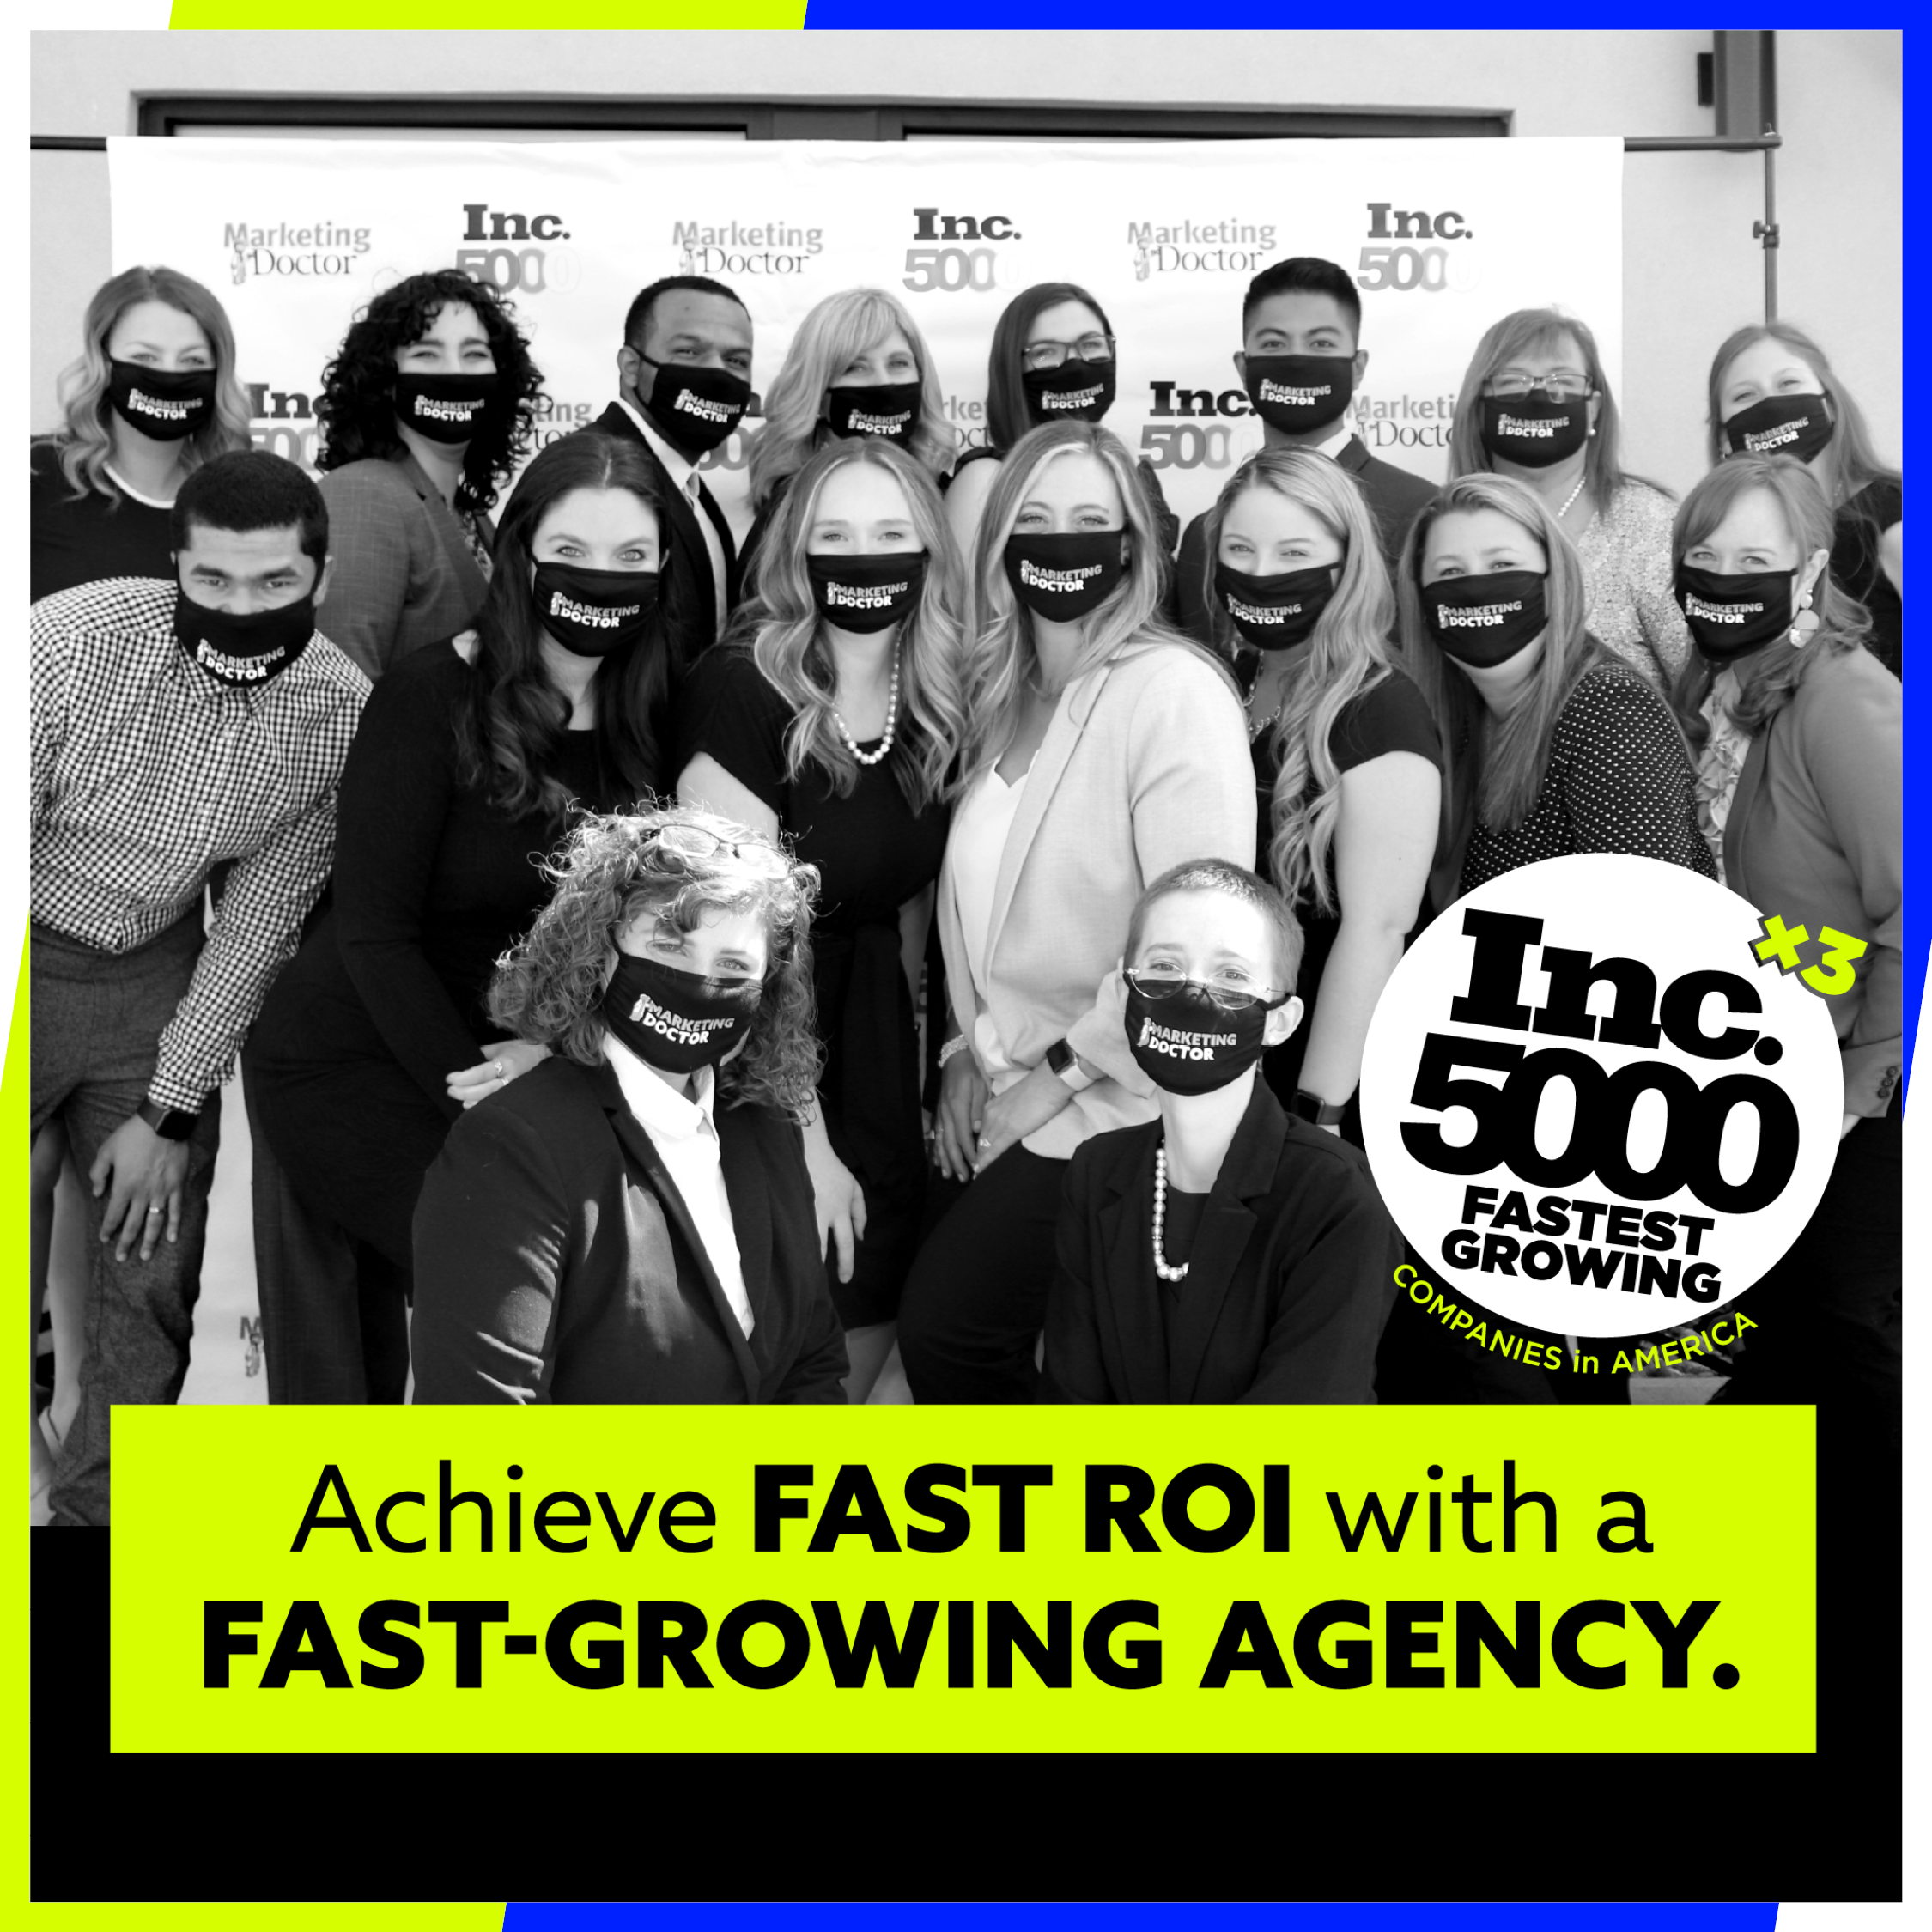 Achieve Fast ROI with a Fast-Growing Agency